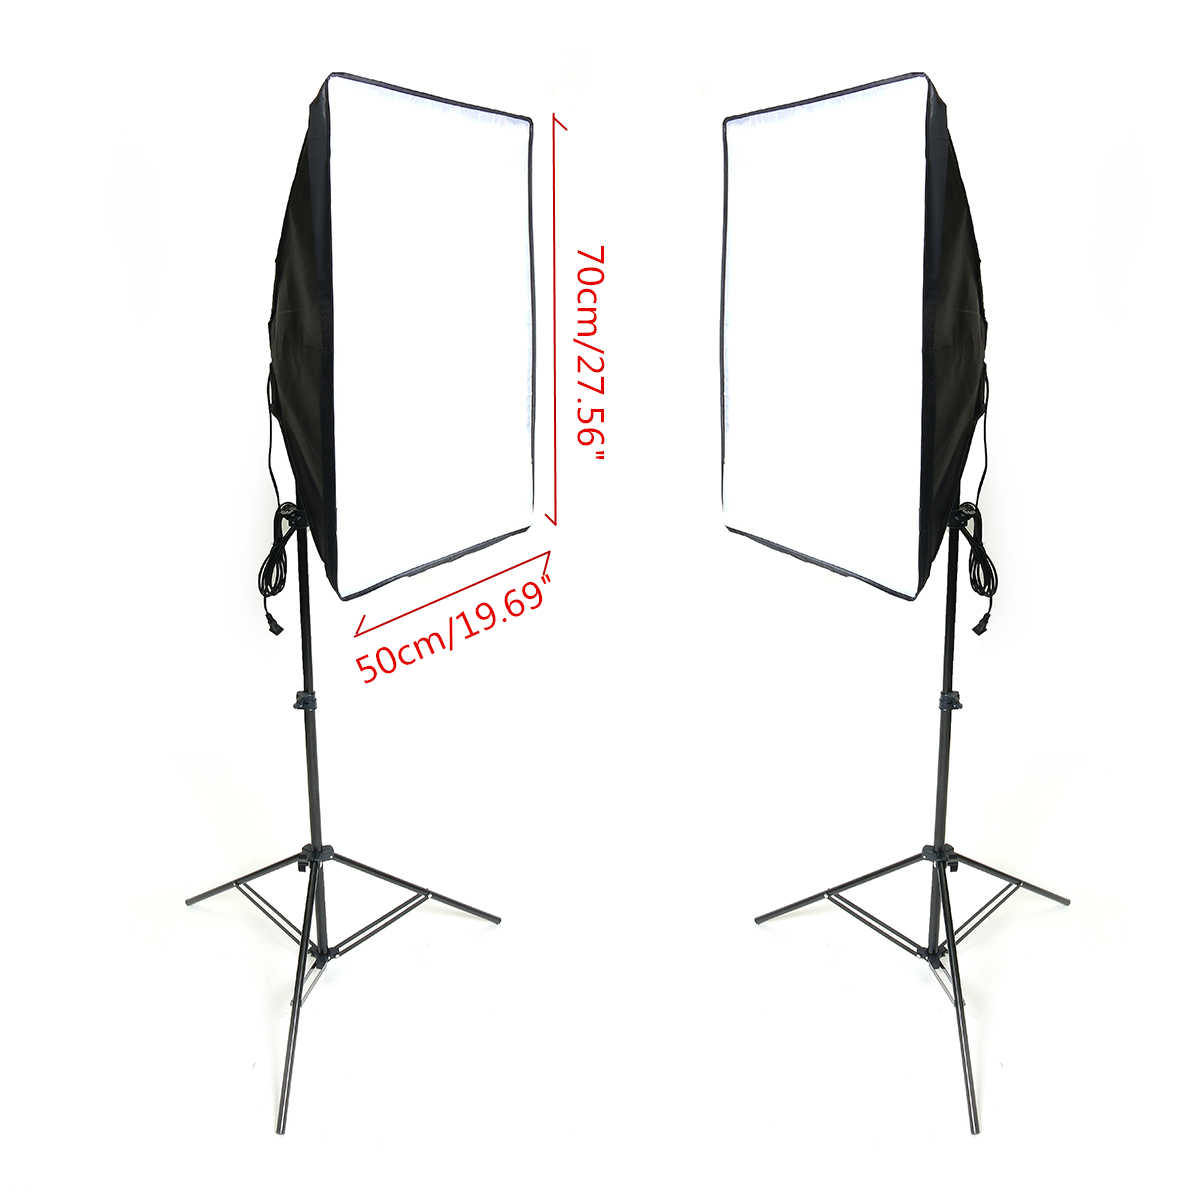 Diffuser Light 50X70cm Continuous Lighting Softbox for E27 Lamp Holder Socket With Photograph Light Stand Photo Studio Kit